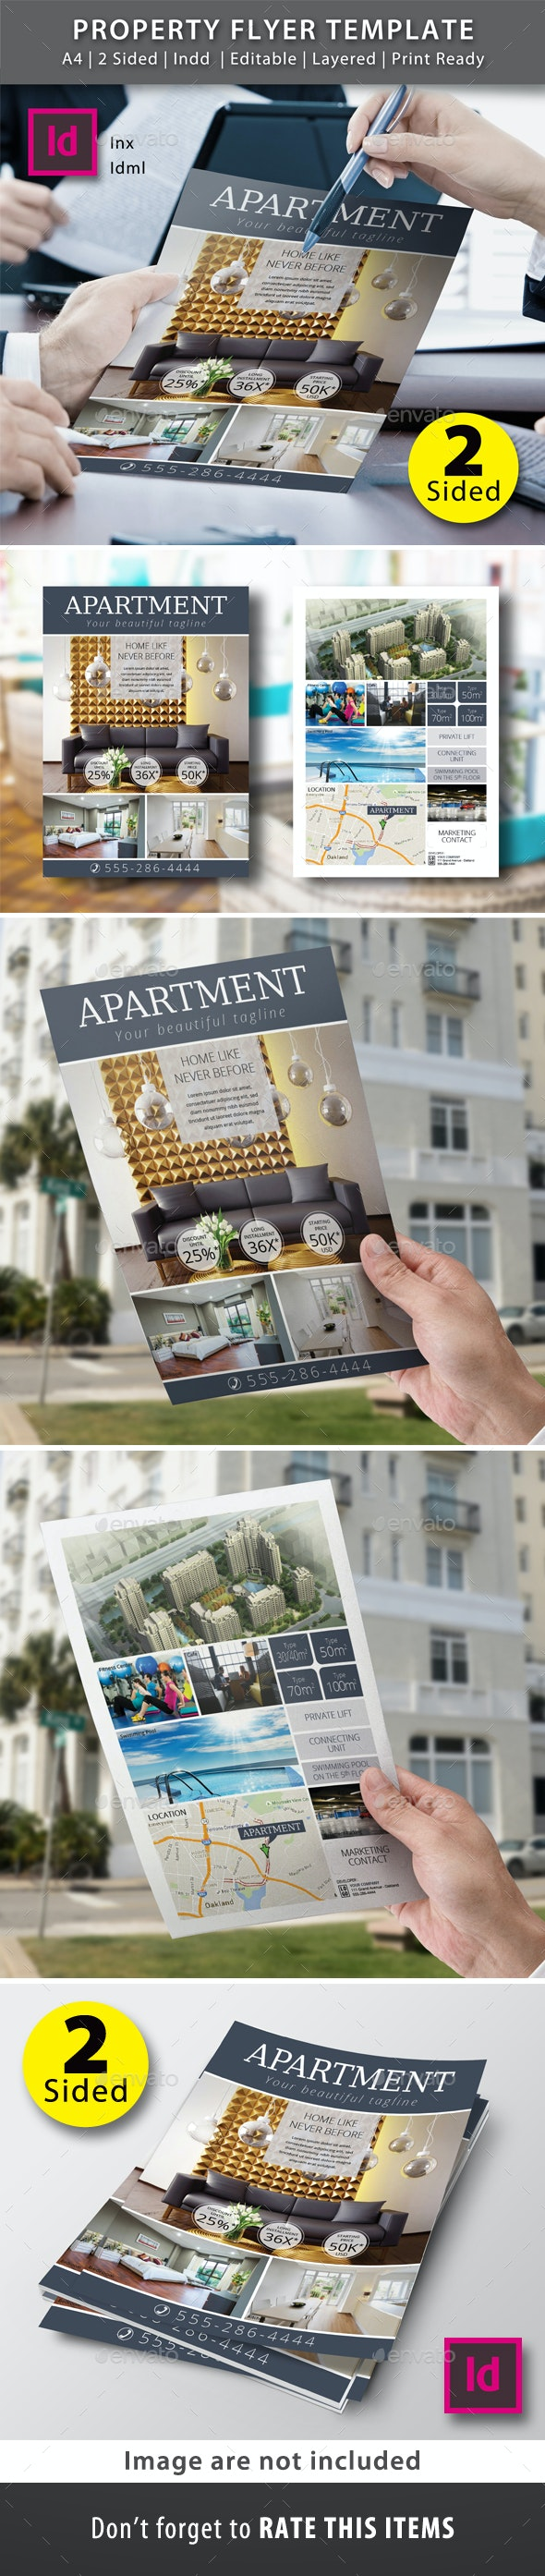 2 Sided Property Flyer Template - Commerce Flyers